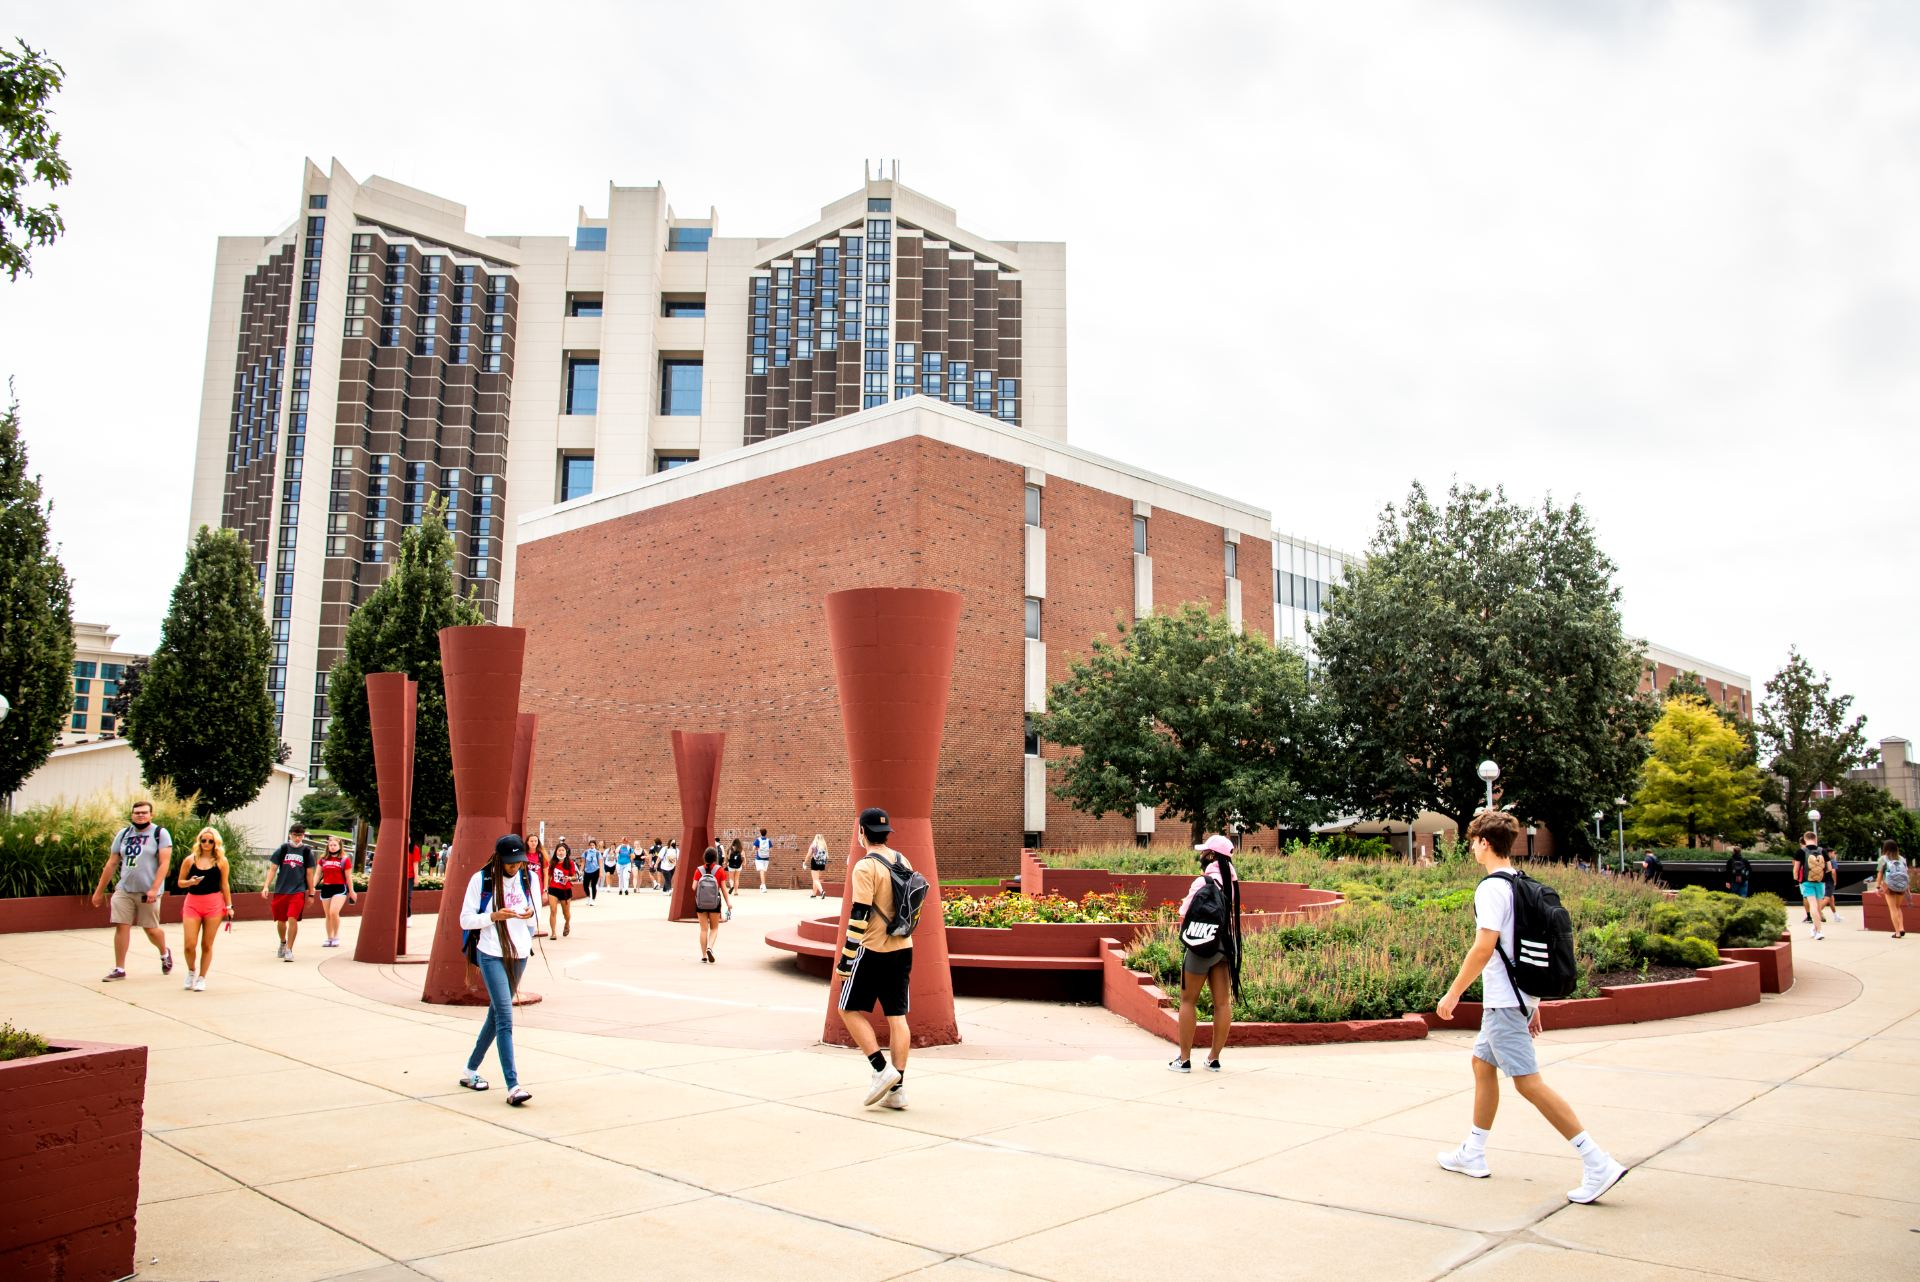 Campus sidewalks are bustling with students walking to classes between classes.